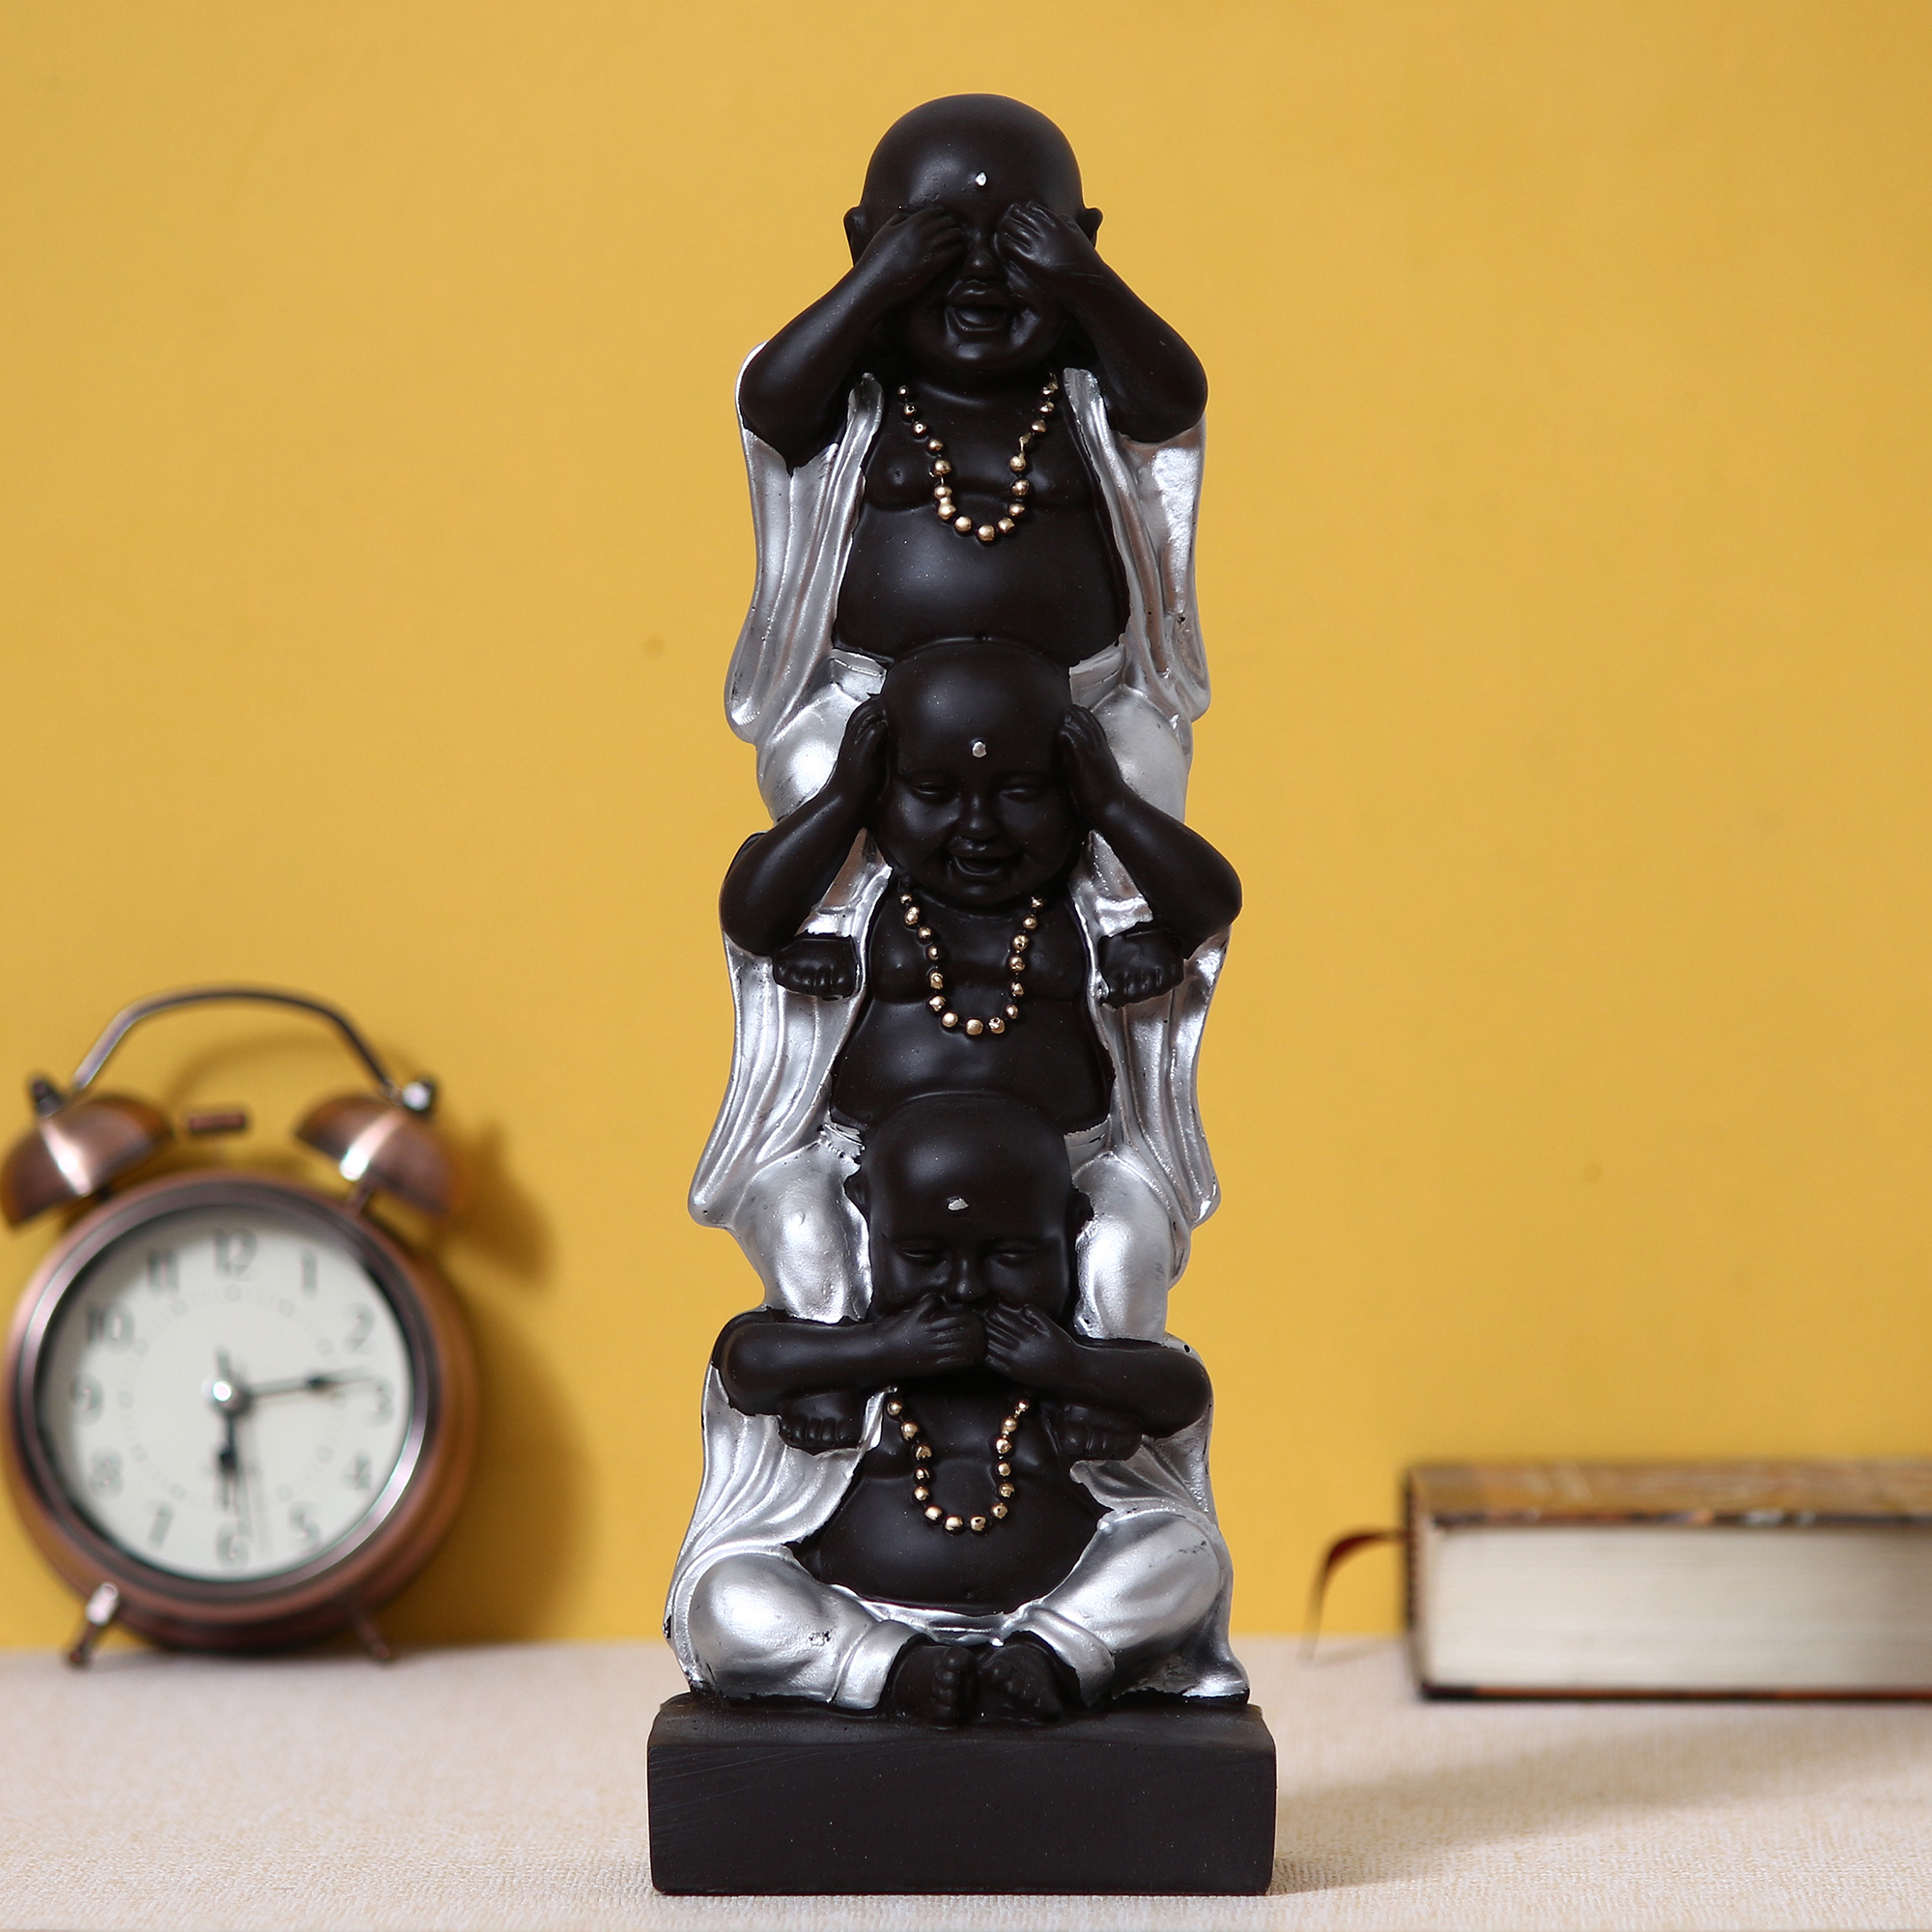 Set of 3 Silver Laughing Buddha Standing on each other Decorative Showpiece Indian Home Decor